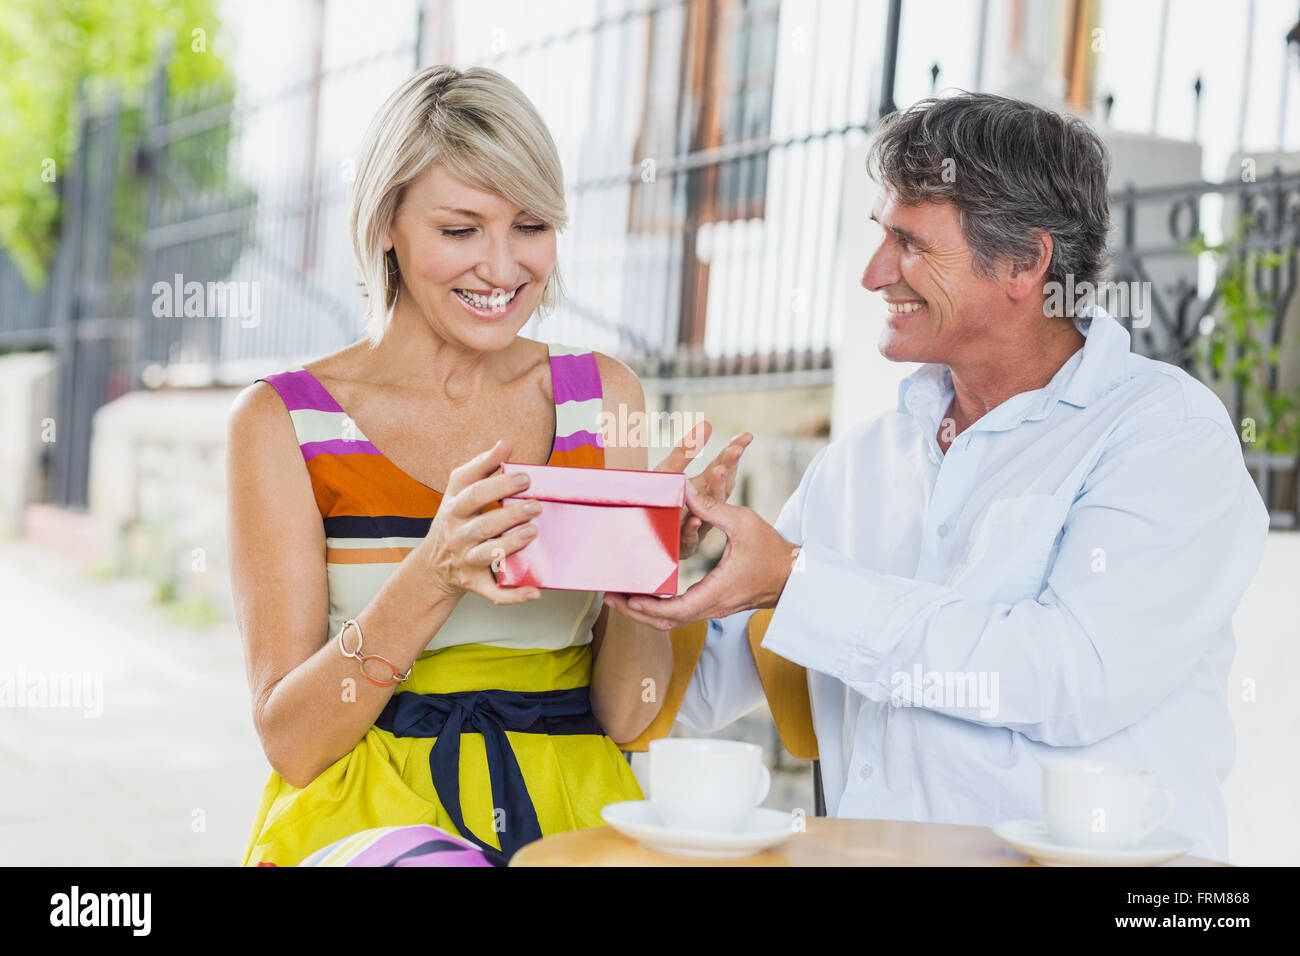 Woman receiving gift from man Stock Photo